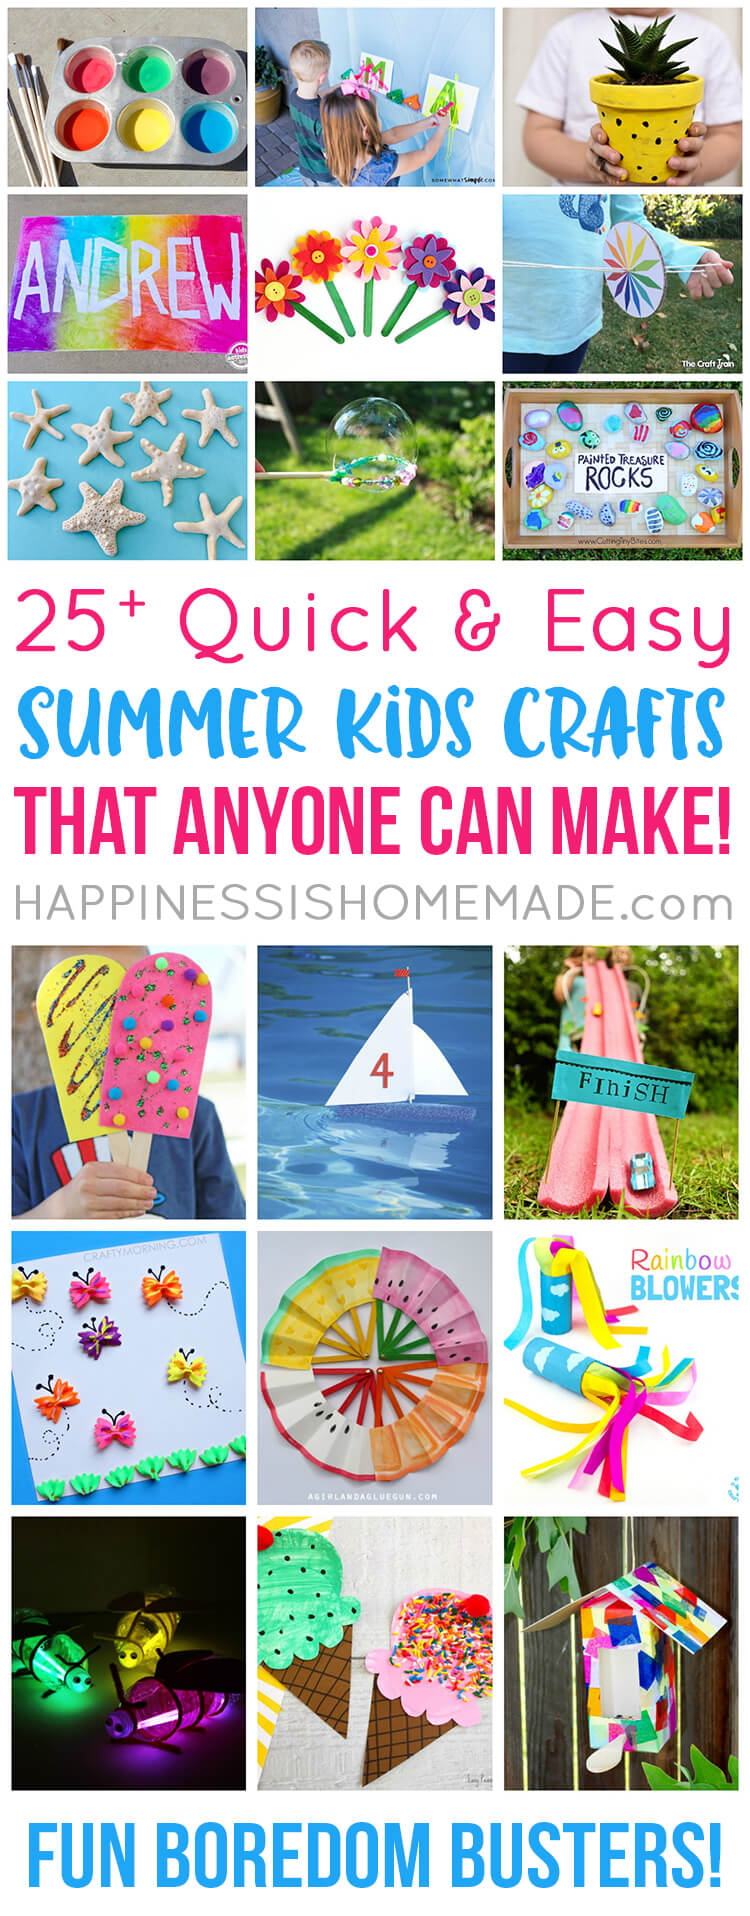 Easy Summer Kids Crafts That Anyone Can Make!